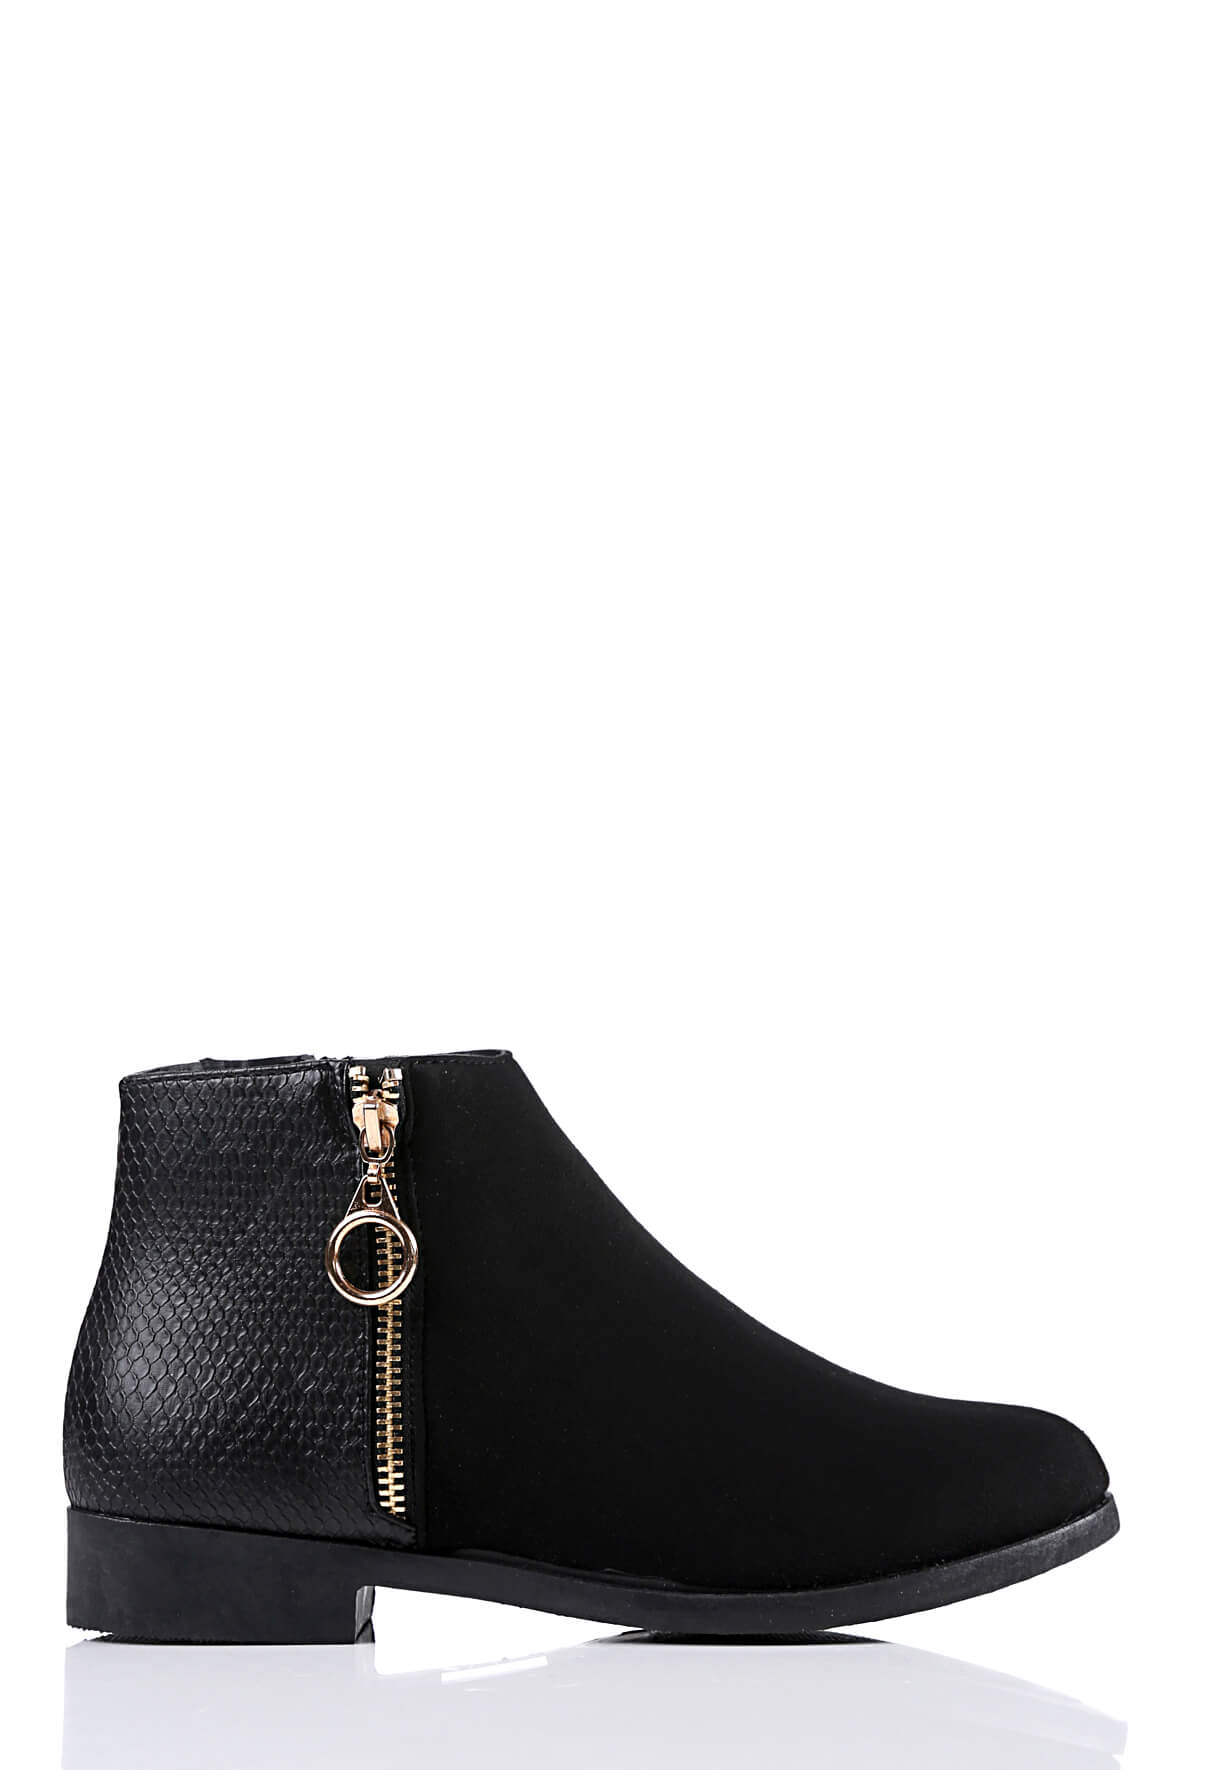 Wide Fit Black Suede Side Zip Boots